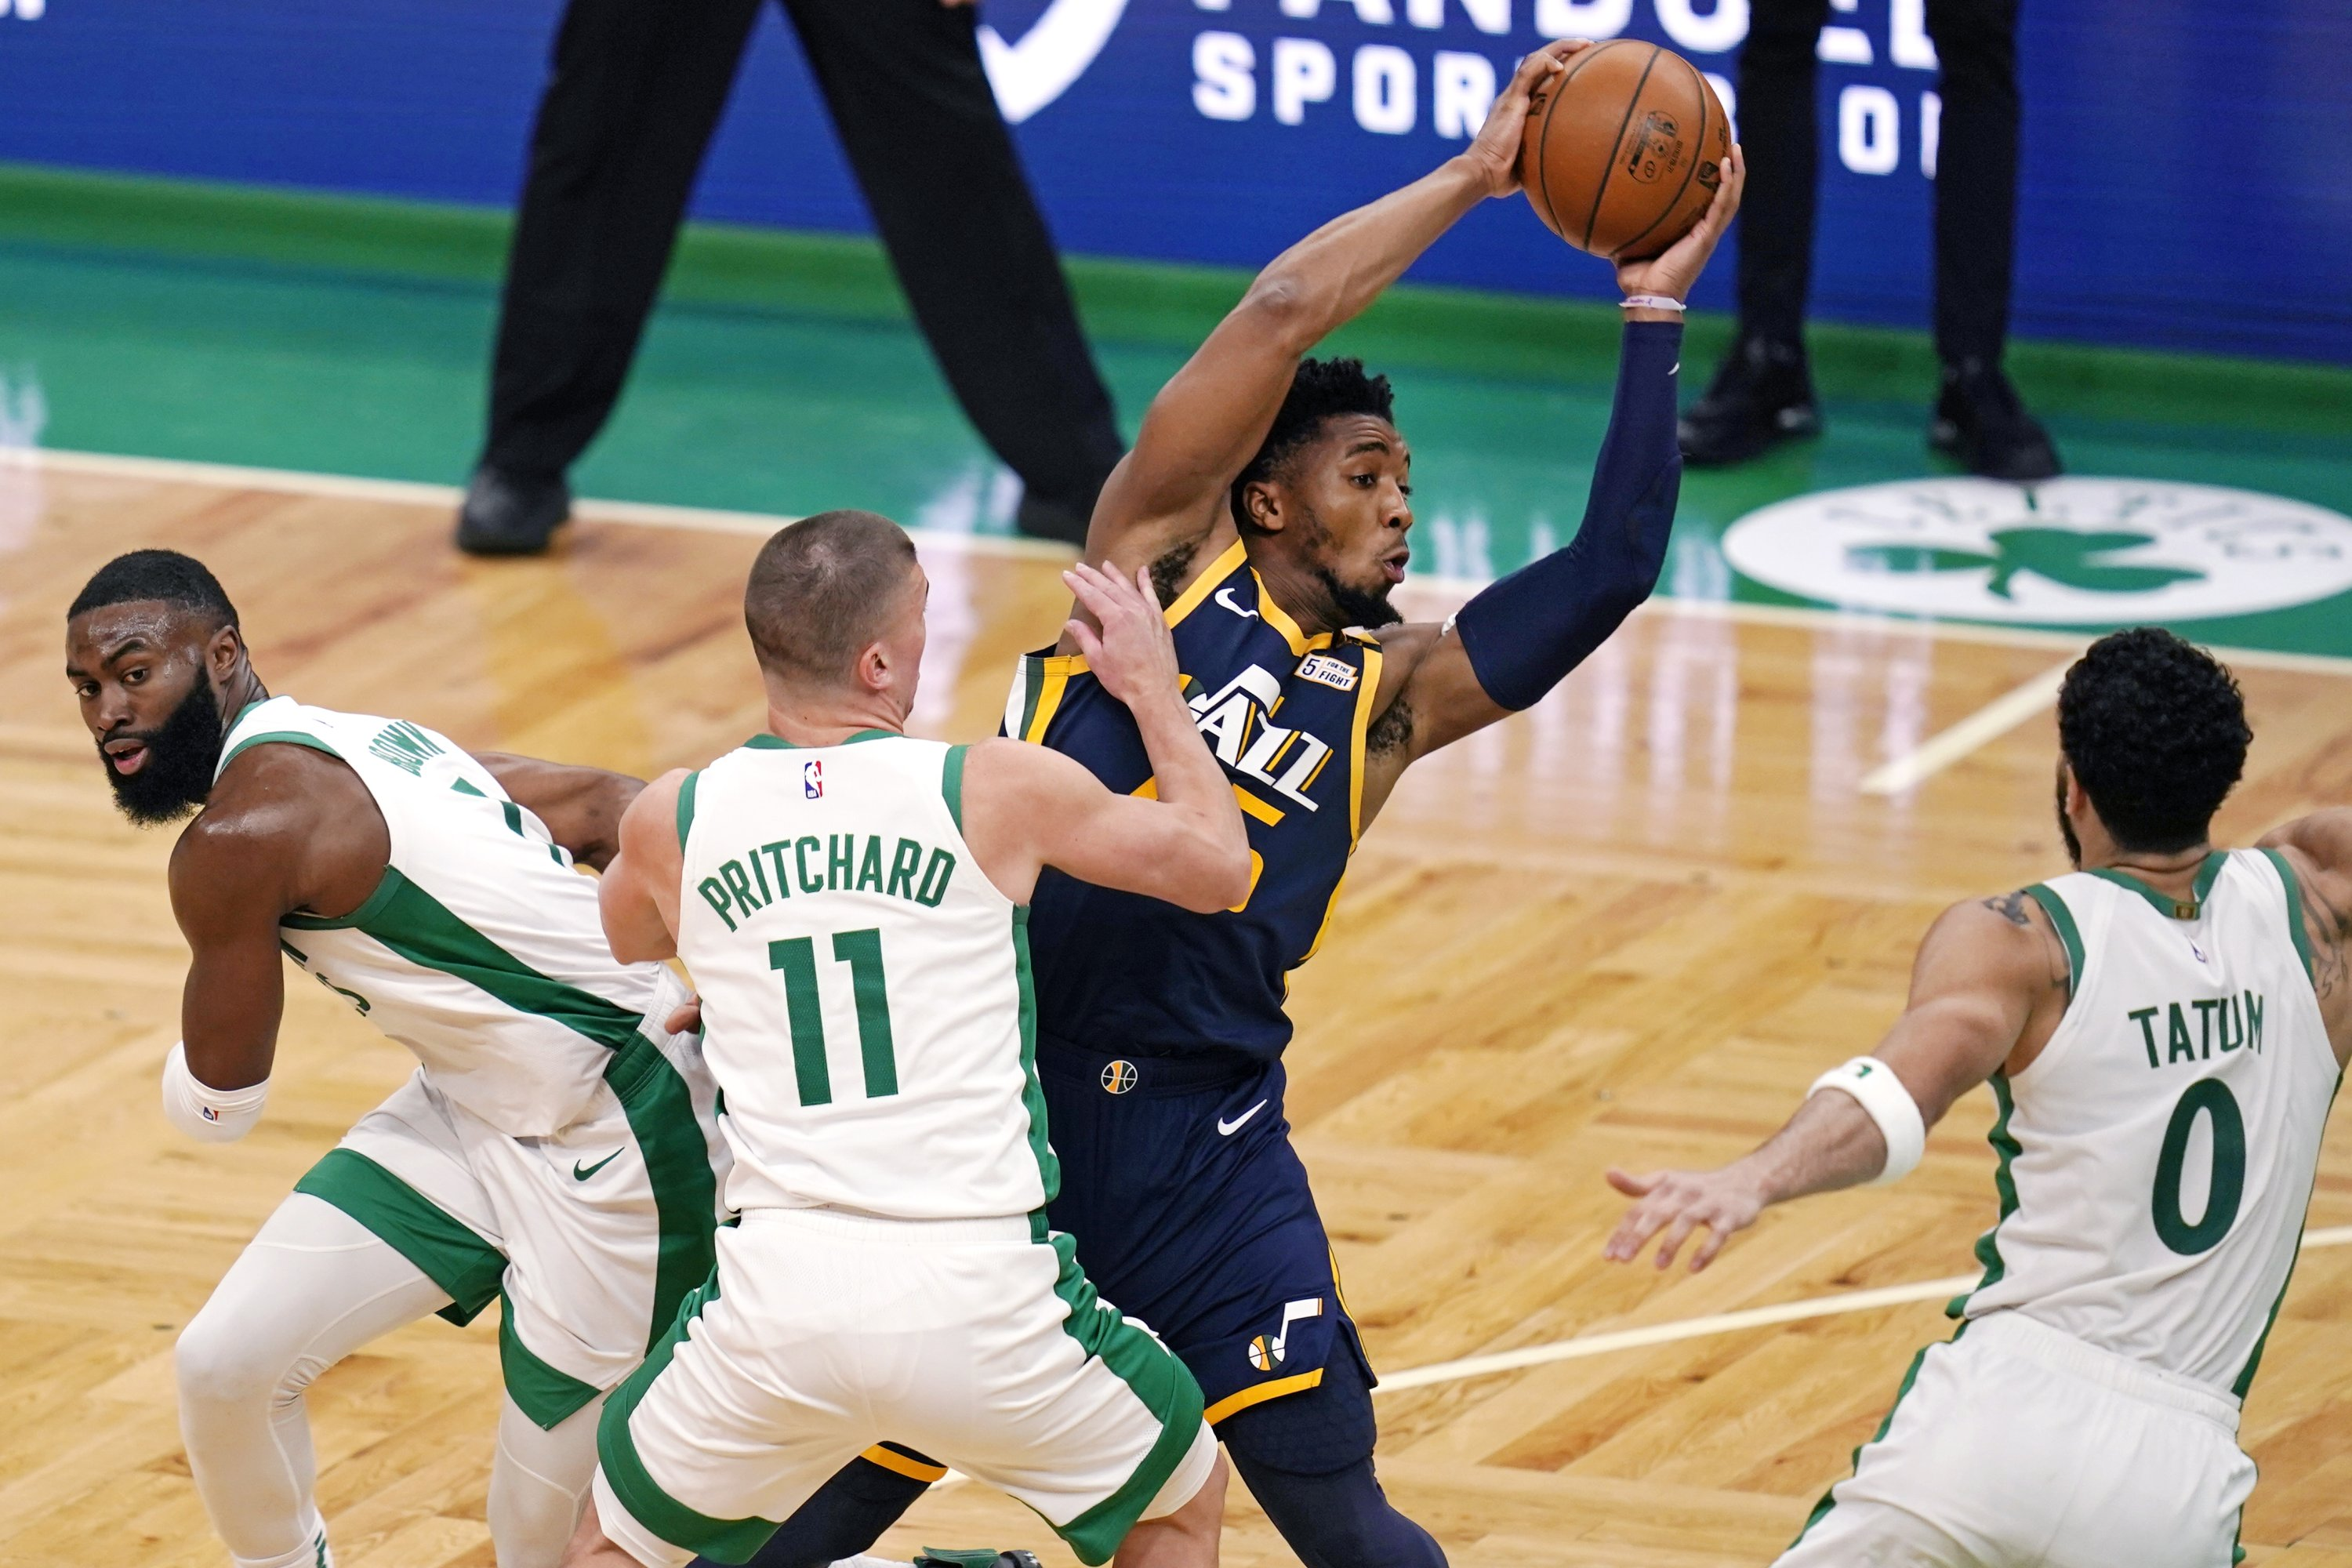 Utah Jazz guard Donovan Mitchell (C) looks to pass the ball while guarded by Boston Celtics' Jaylen Brown (L), guard Payton Pritchard (2nd L) and forward Jayson Tatum (R) during an NBA game, Boston, U.S., March 16, 2021. (AP Photo)